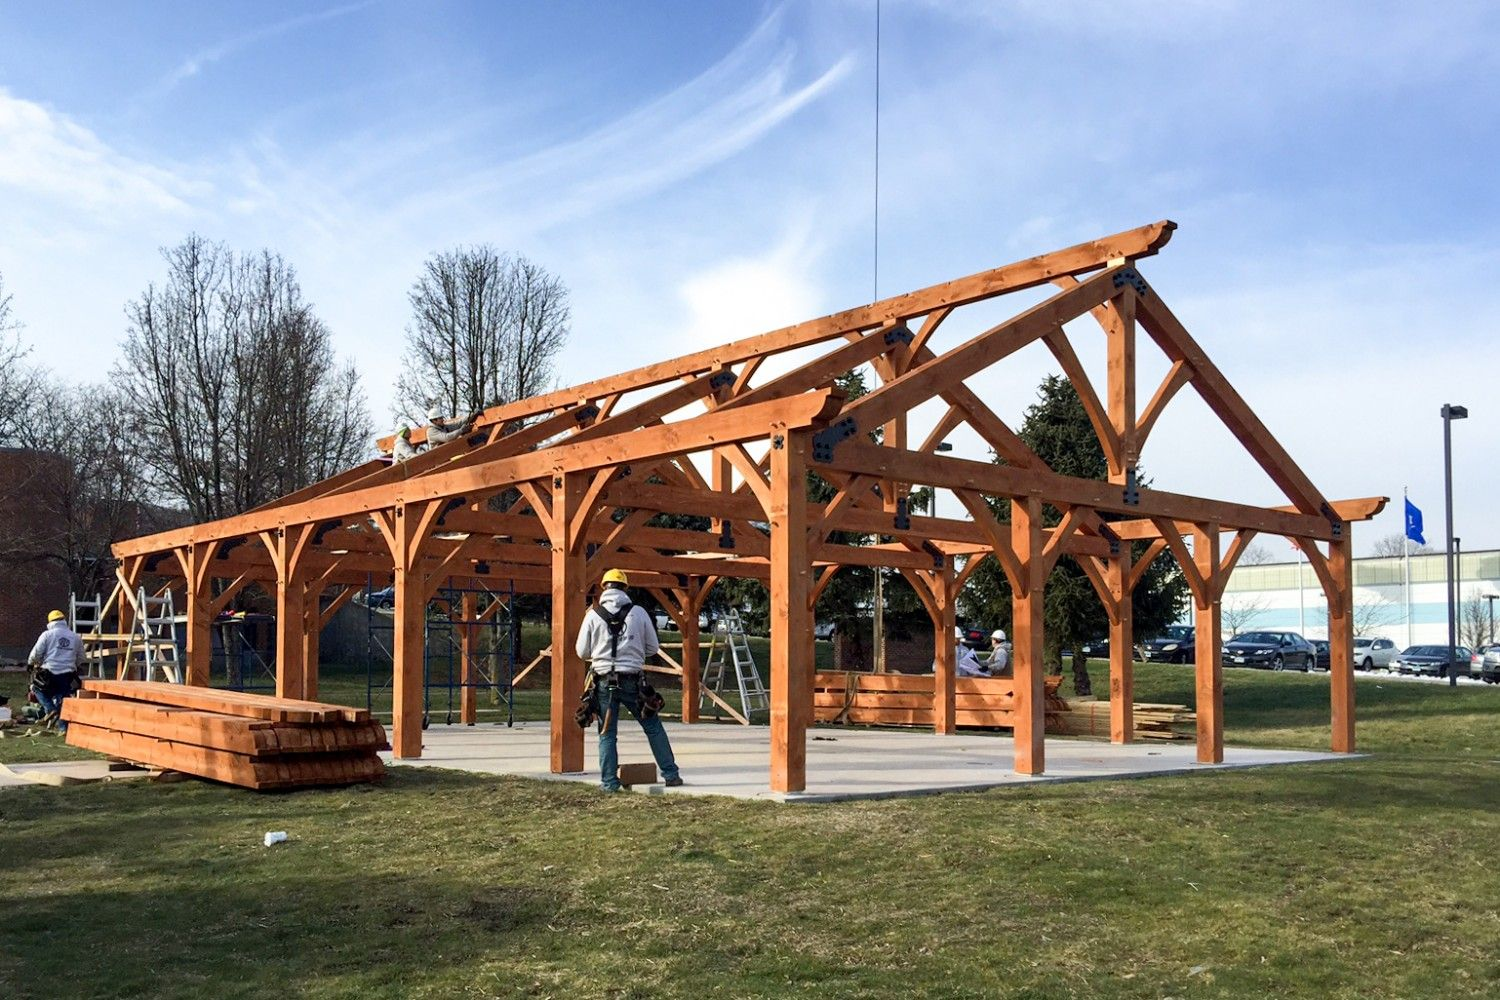 30 X 50 Timber Frame Pavilion At Wcsu The Barn Yard Great